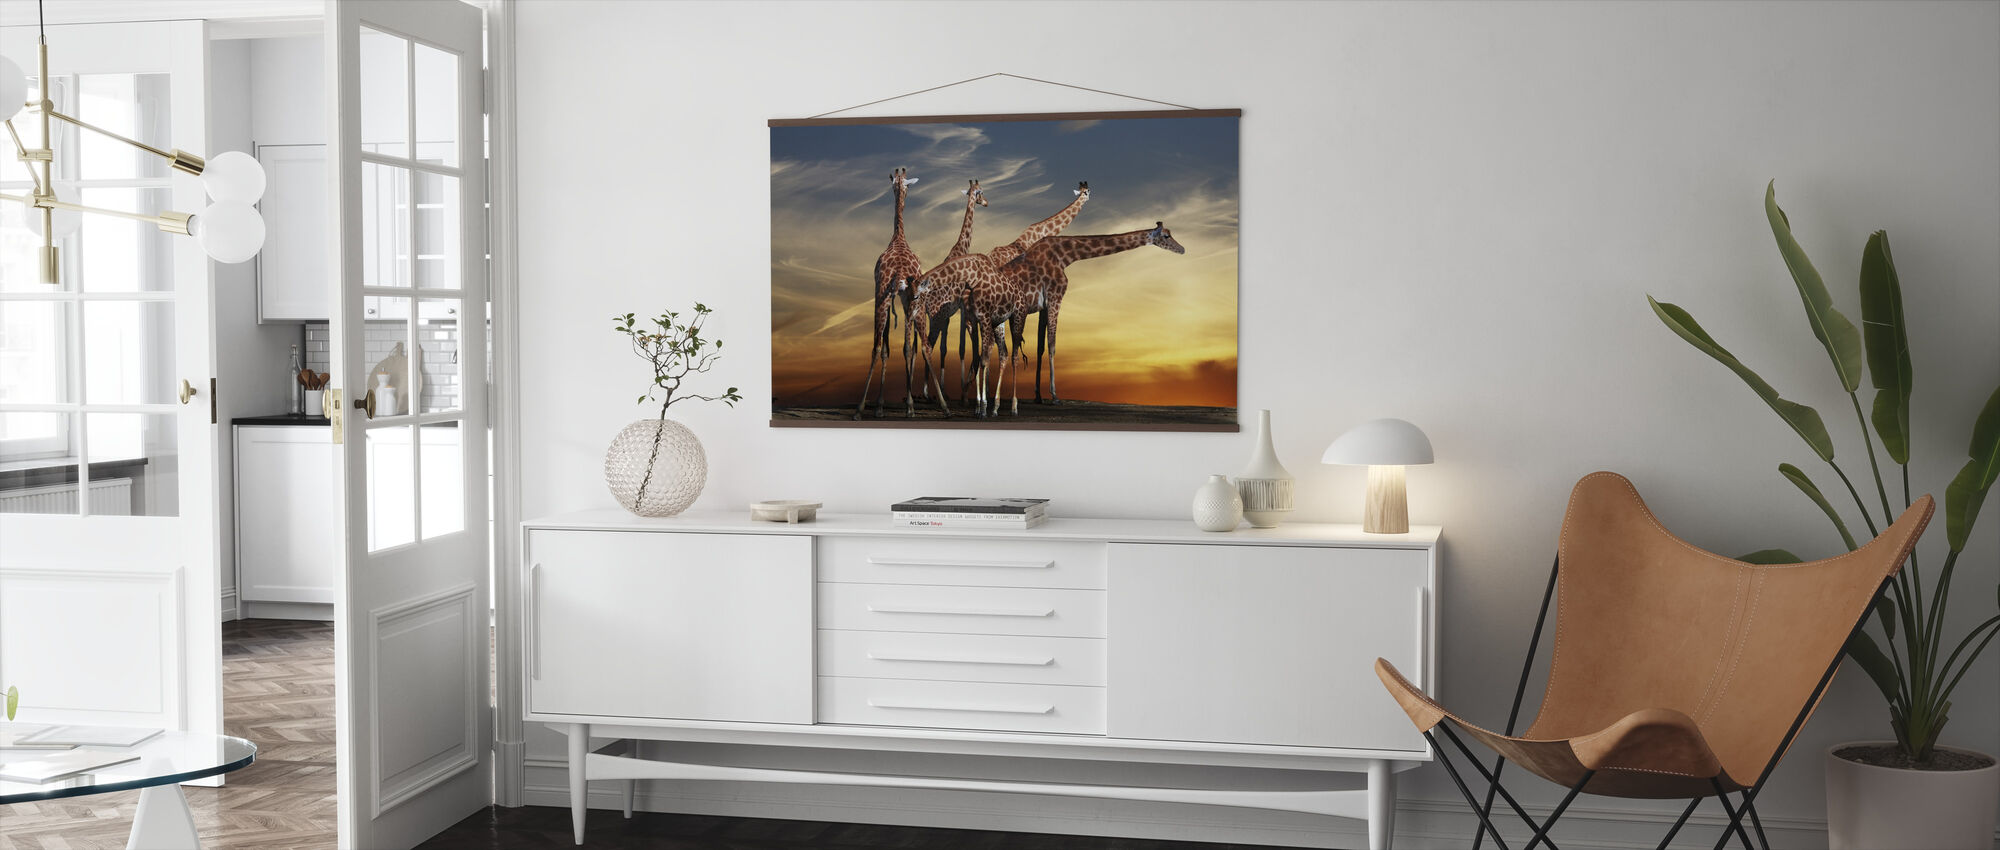 Giraffes and a View - Poster - Living Room